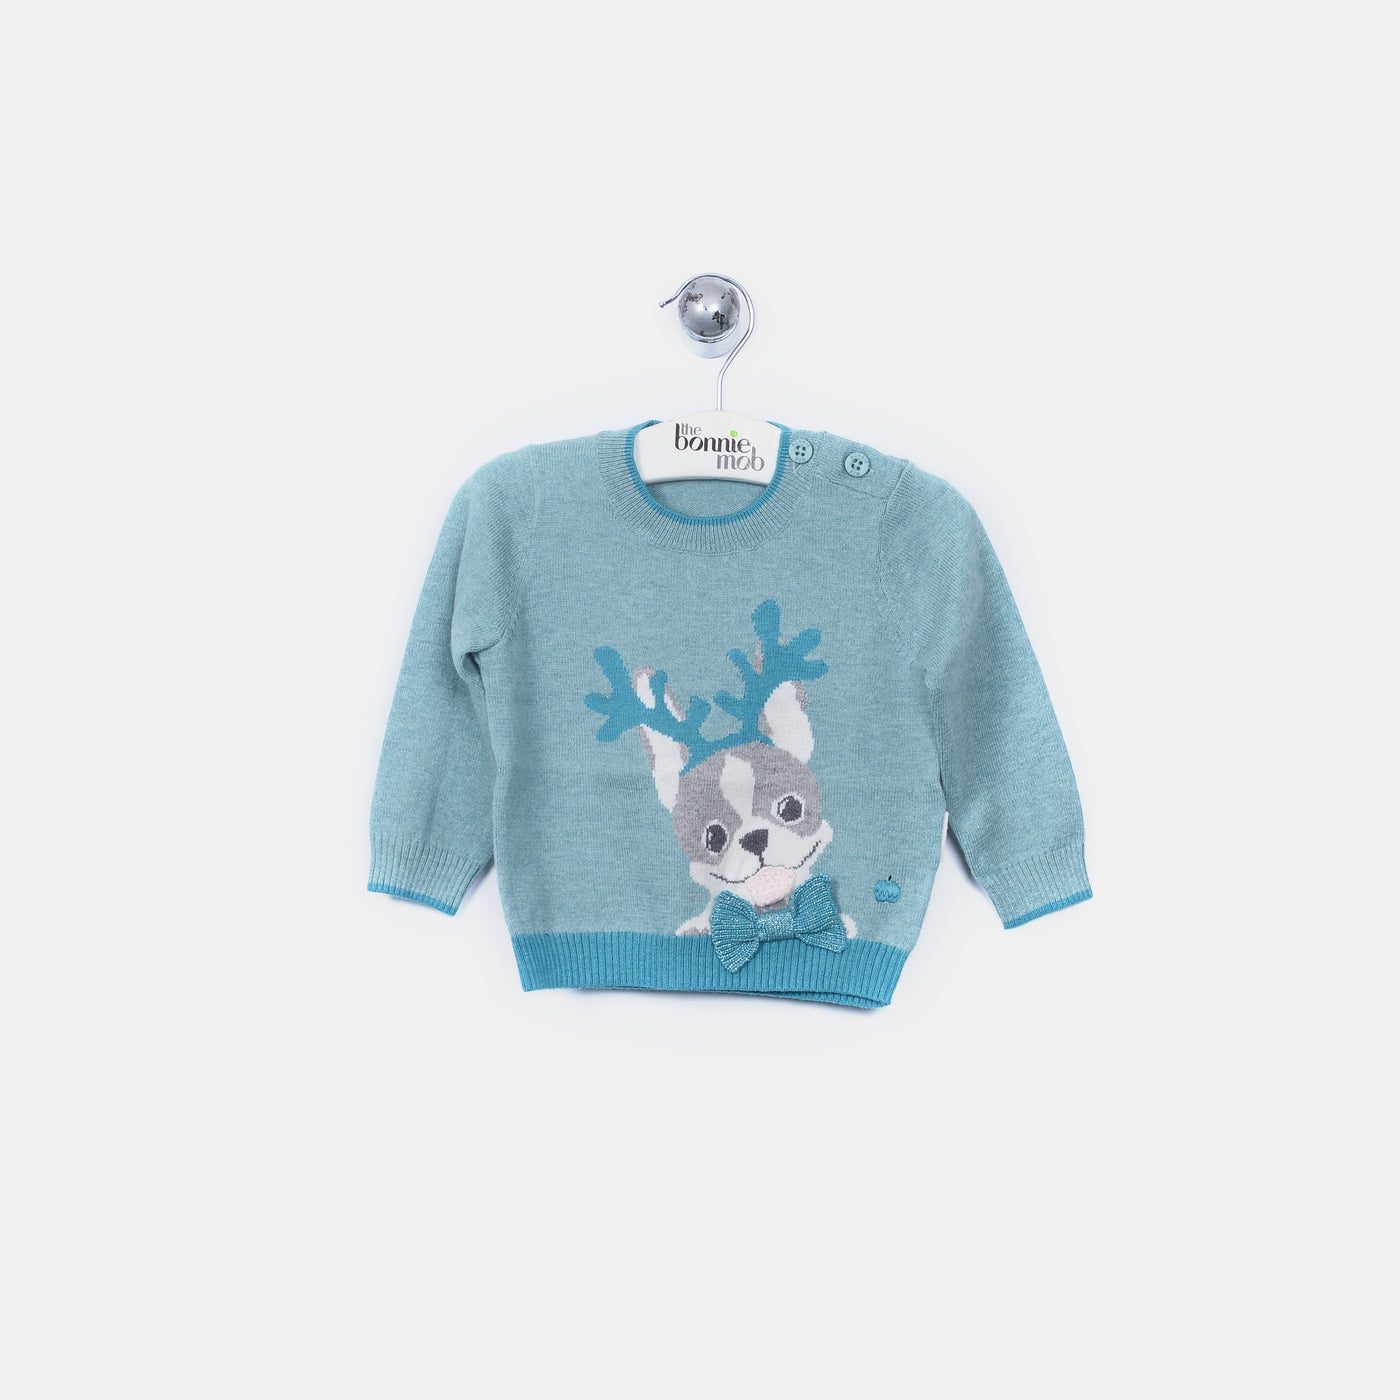 L-REMI - Reindeer Dog Jumper - Baby Boy - Cloudy jade